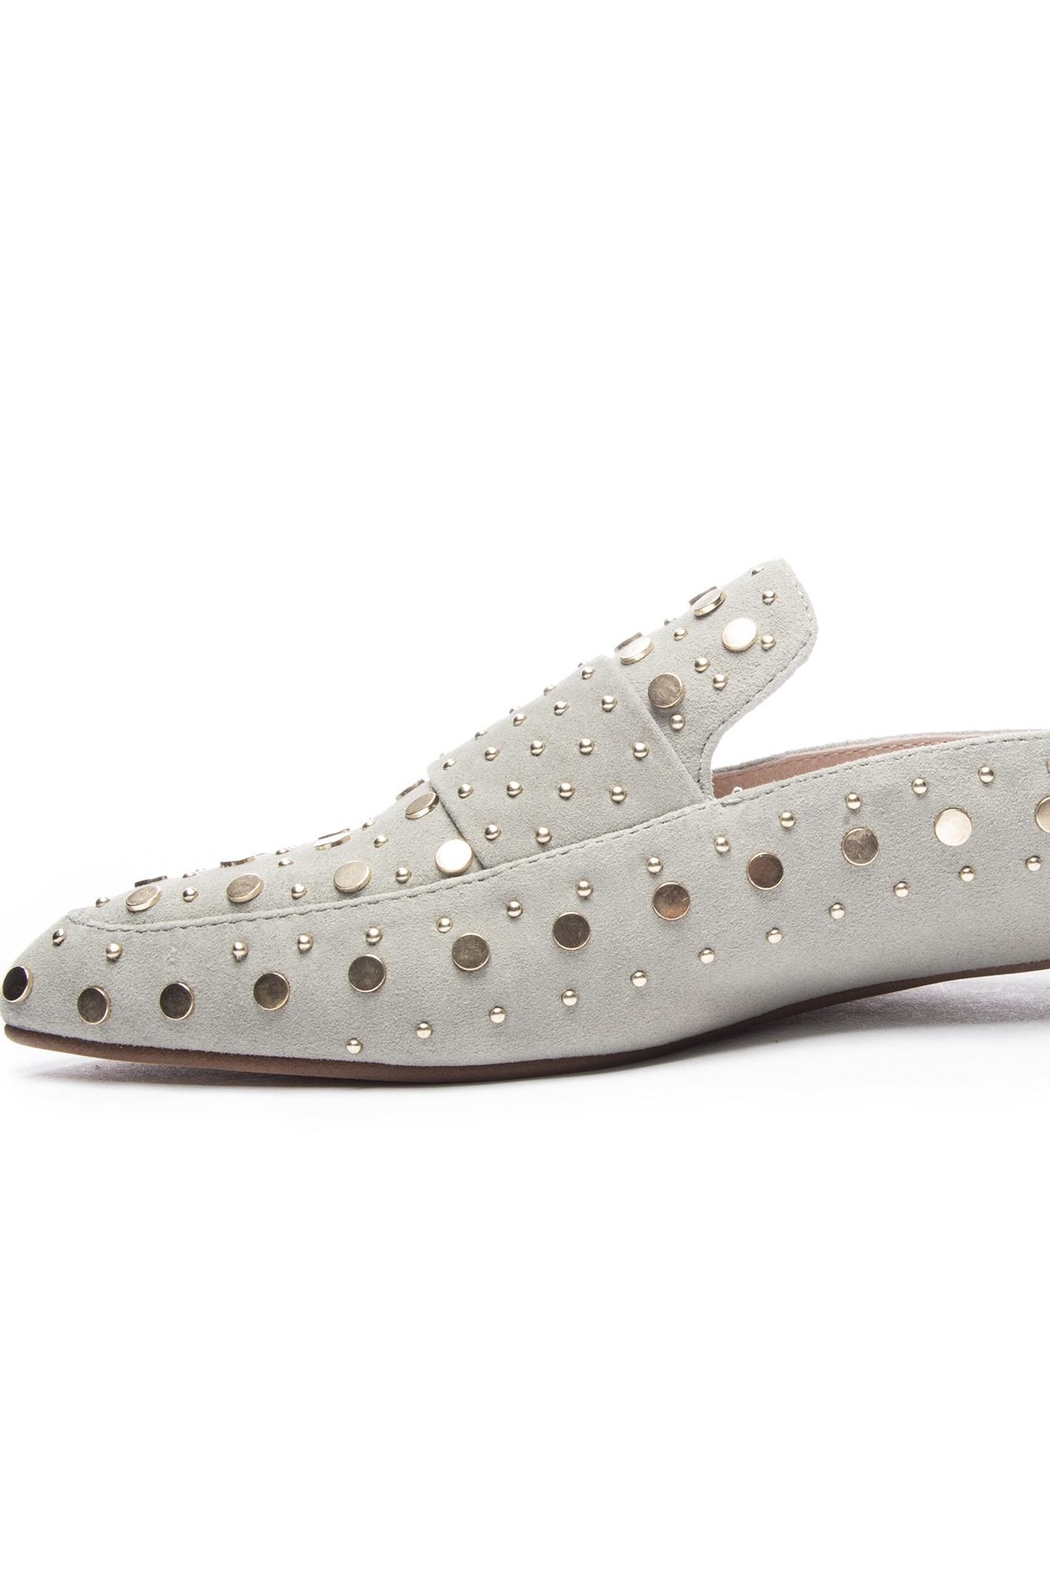 Kristin Cavallari for Chinese Laundry Charlie Studded Mule - Front Full Image